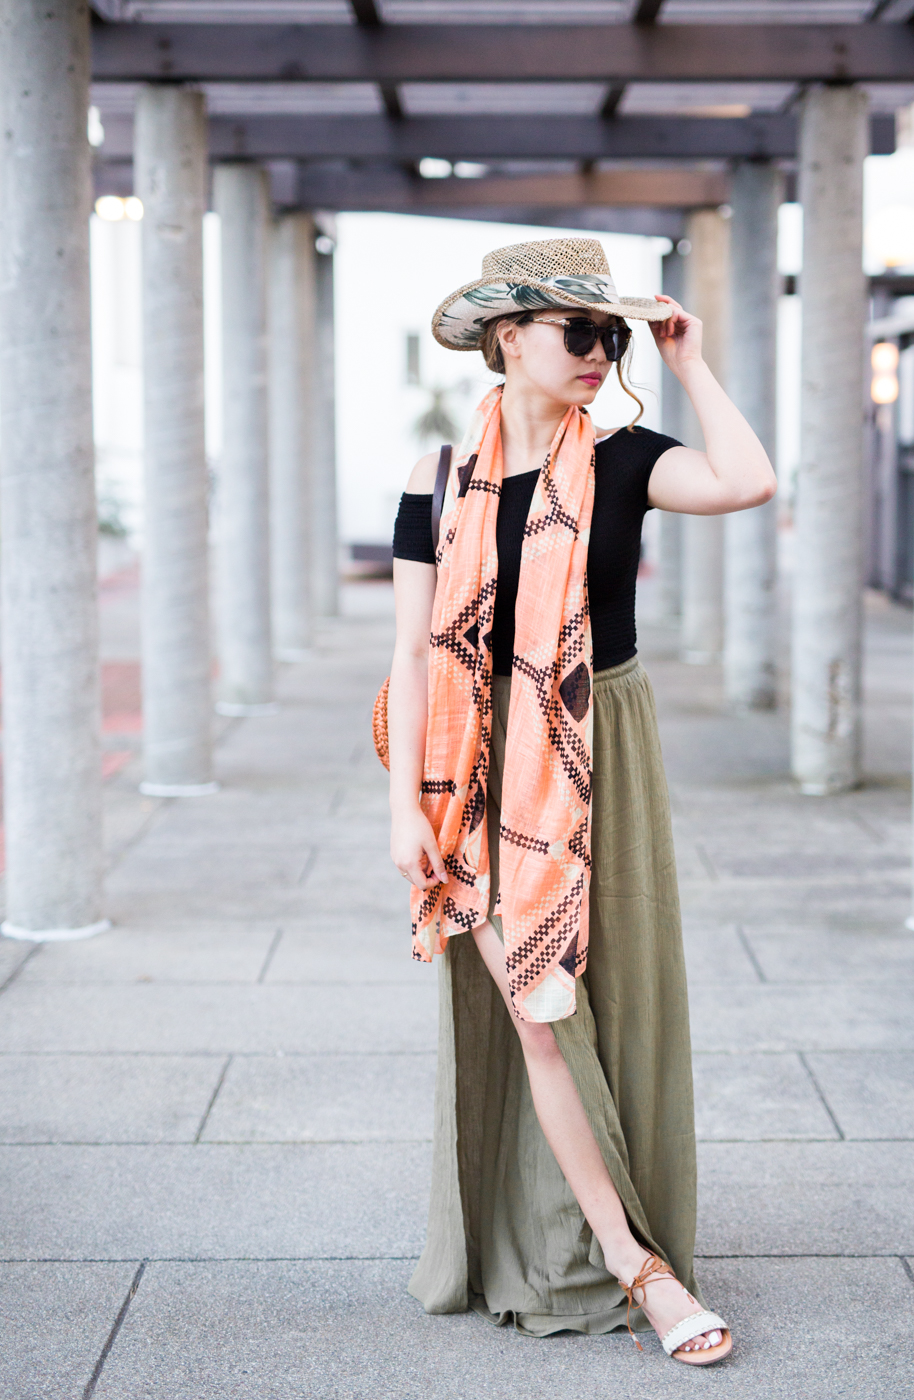 Vacay Style with Forever21 Palazzo Pants | The Chic Diary